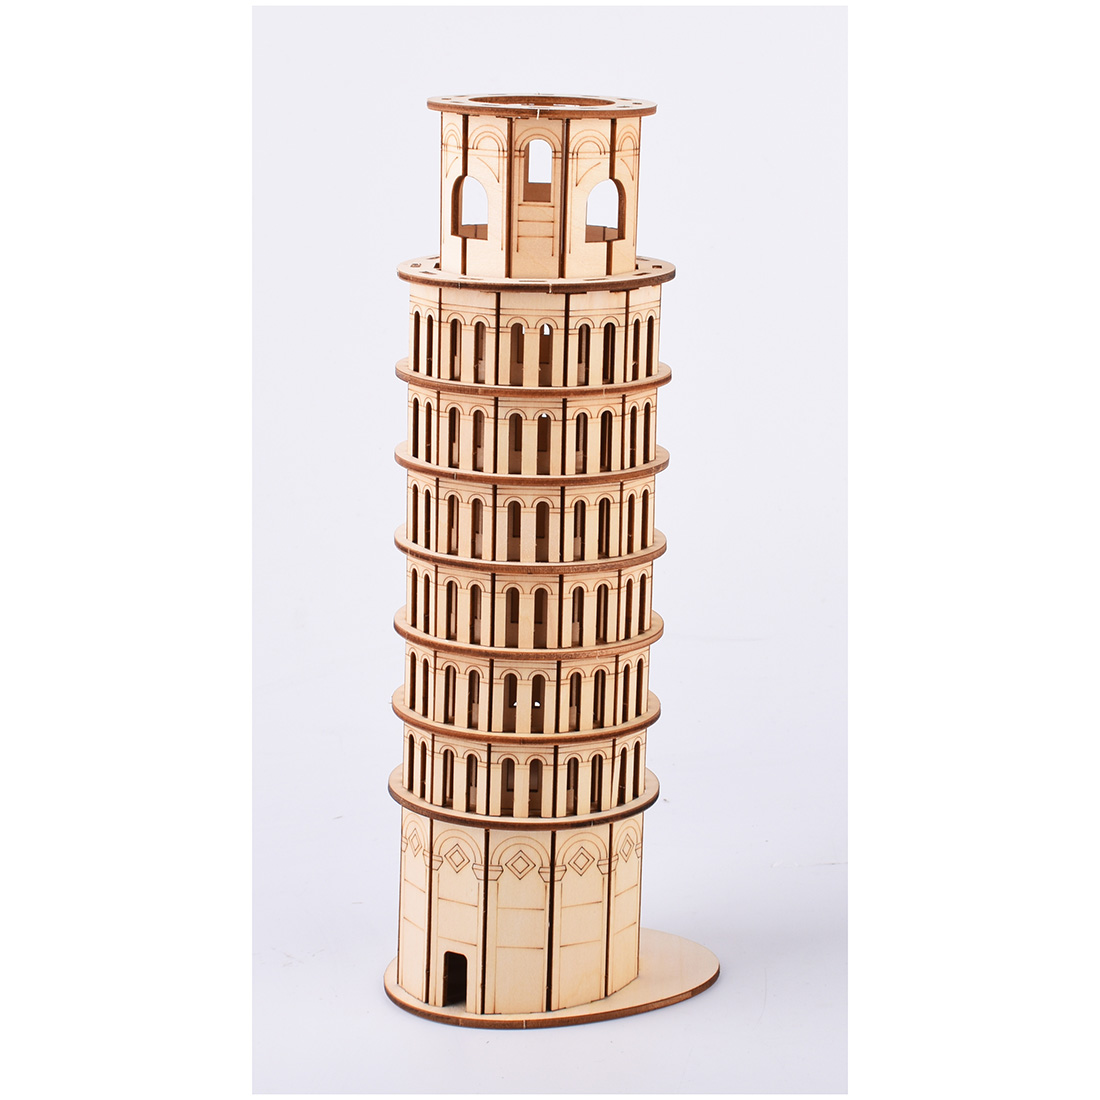 Assembly High precision Laser Cutting Puzzle 3D Wooden Craft Jigsaw Model Building Kits Leaning Tower of Pisa